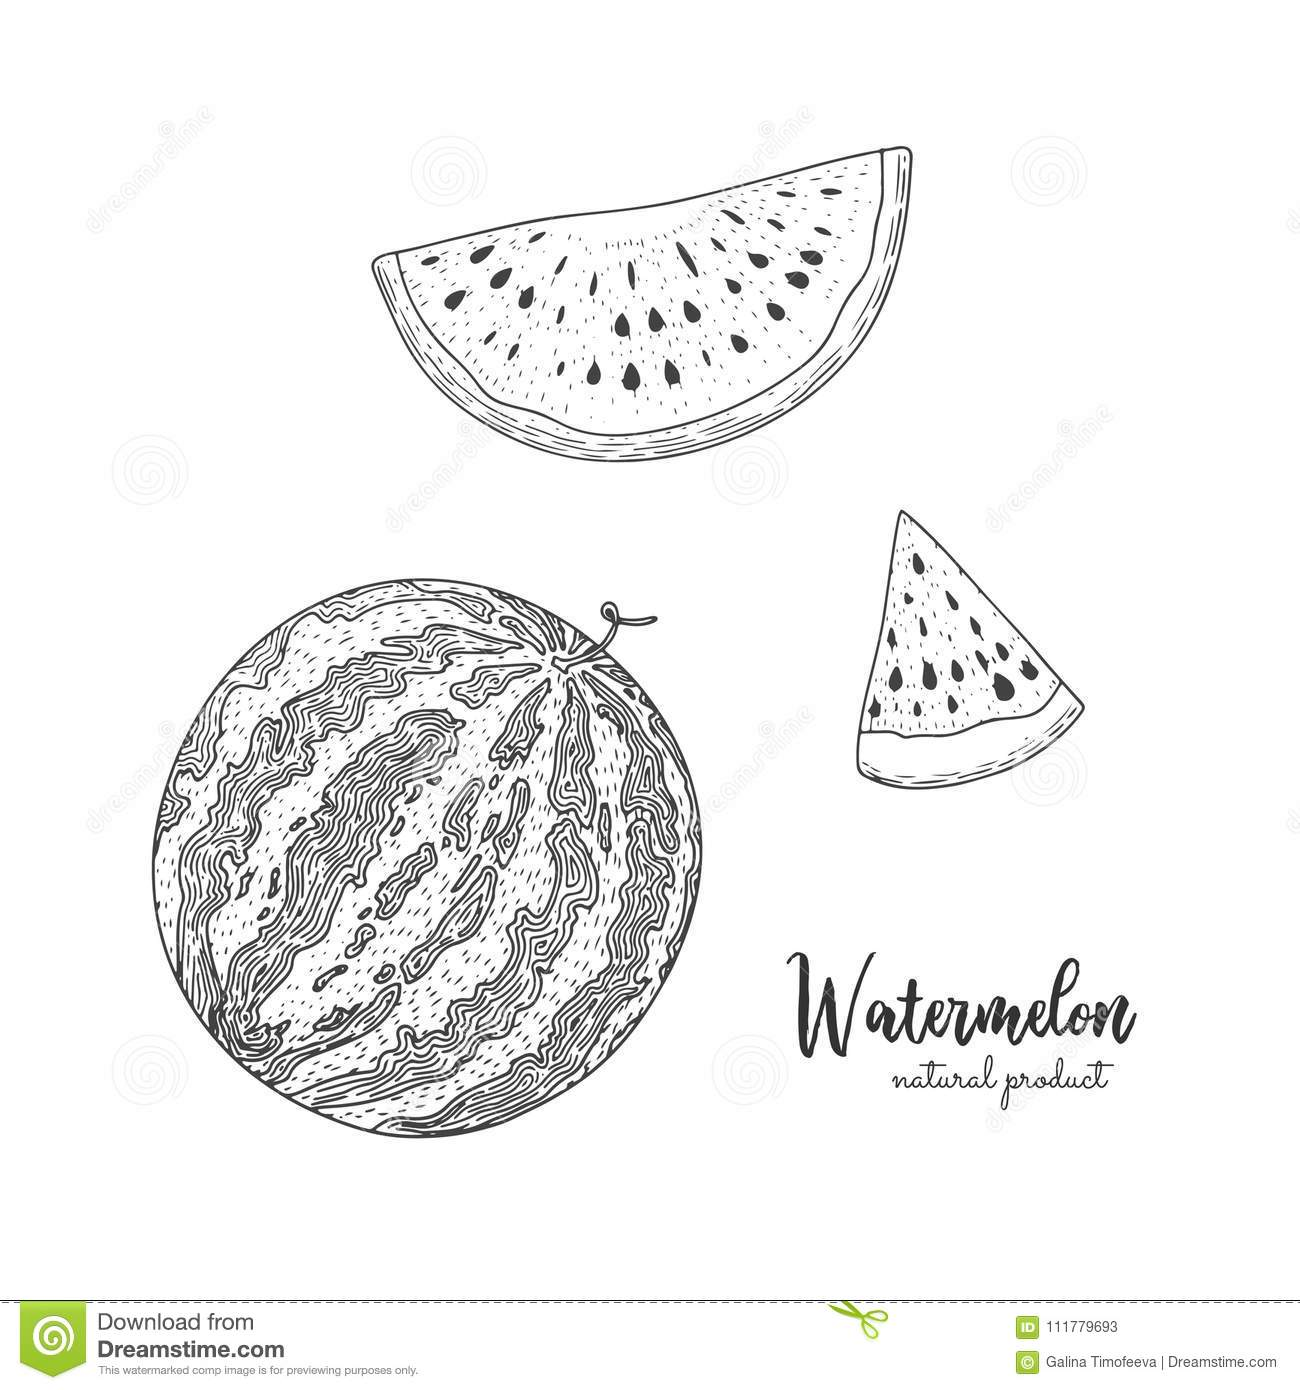 Hand drawn illustration of watermelon isolated on white background. Engraved style illustration. Detailed vegetarian